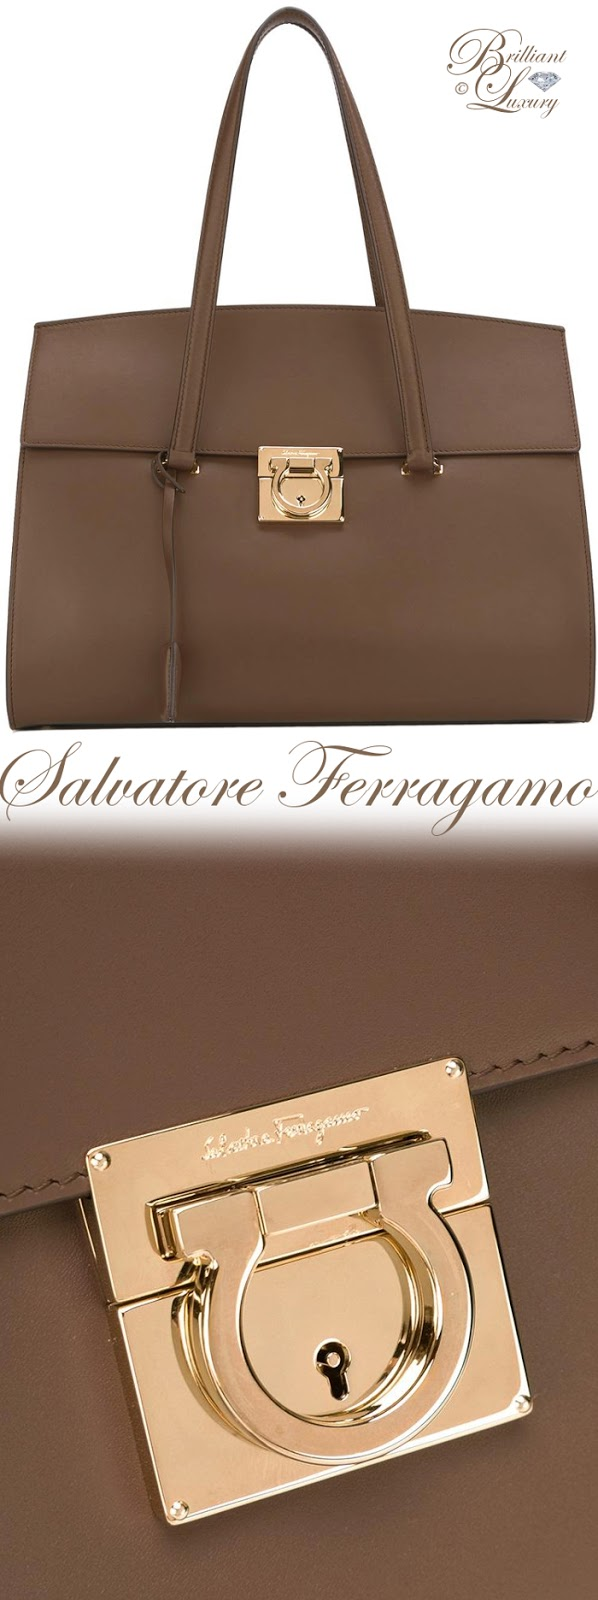 Brilliant Luxury ♦ Salvatore Ferragamo Mara Tote